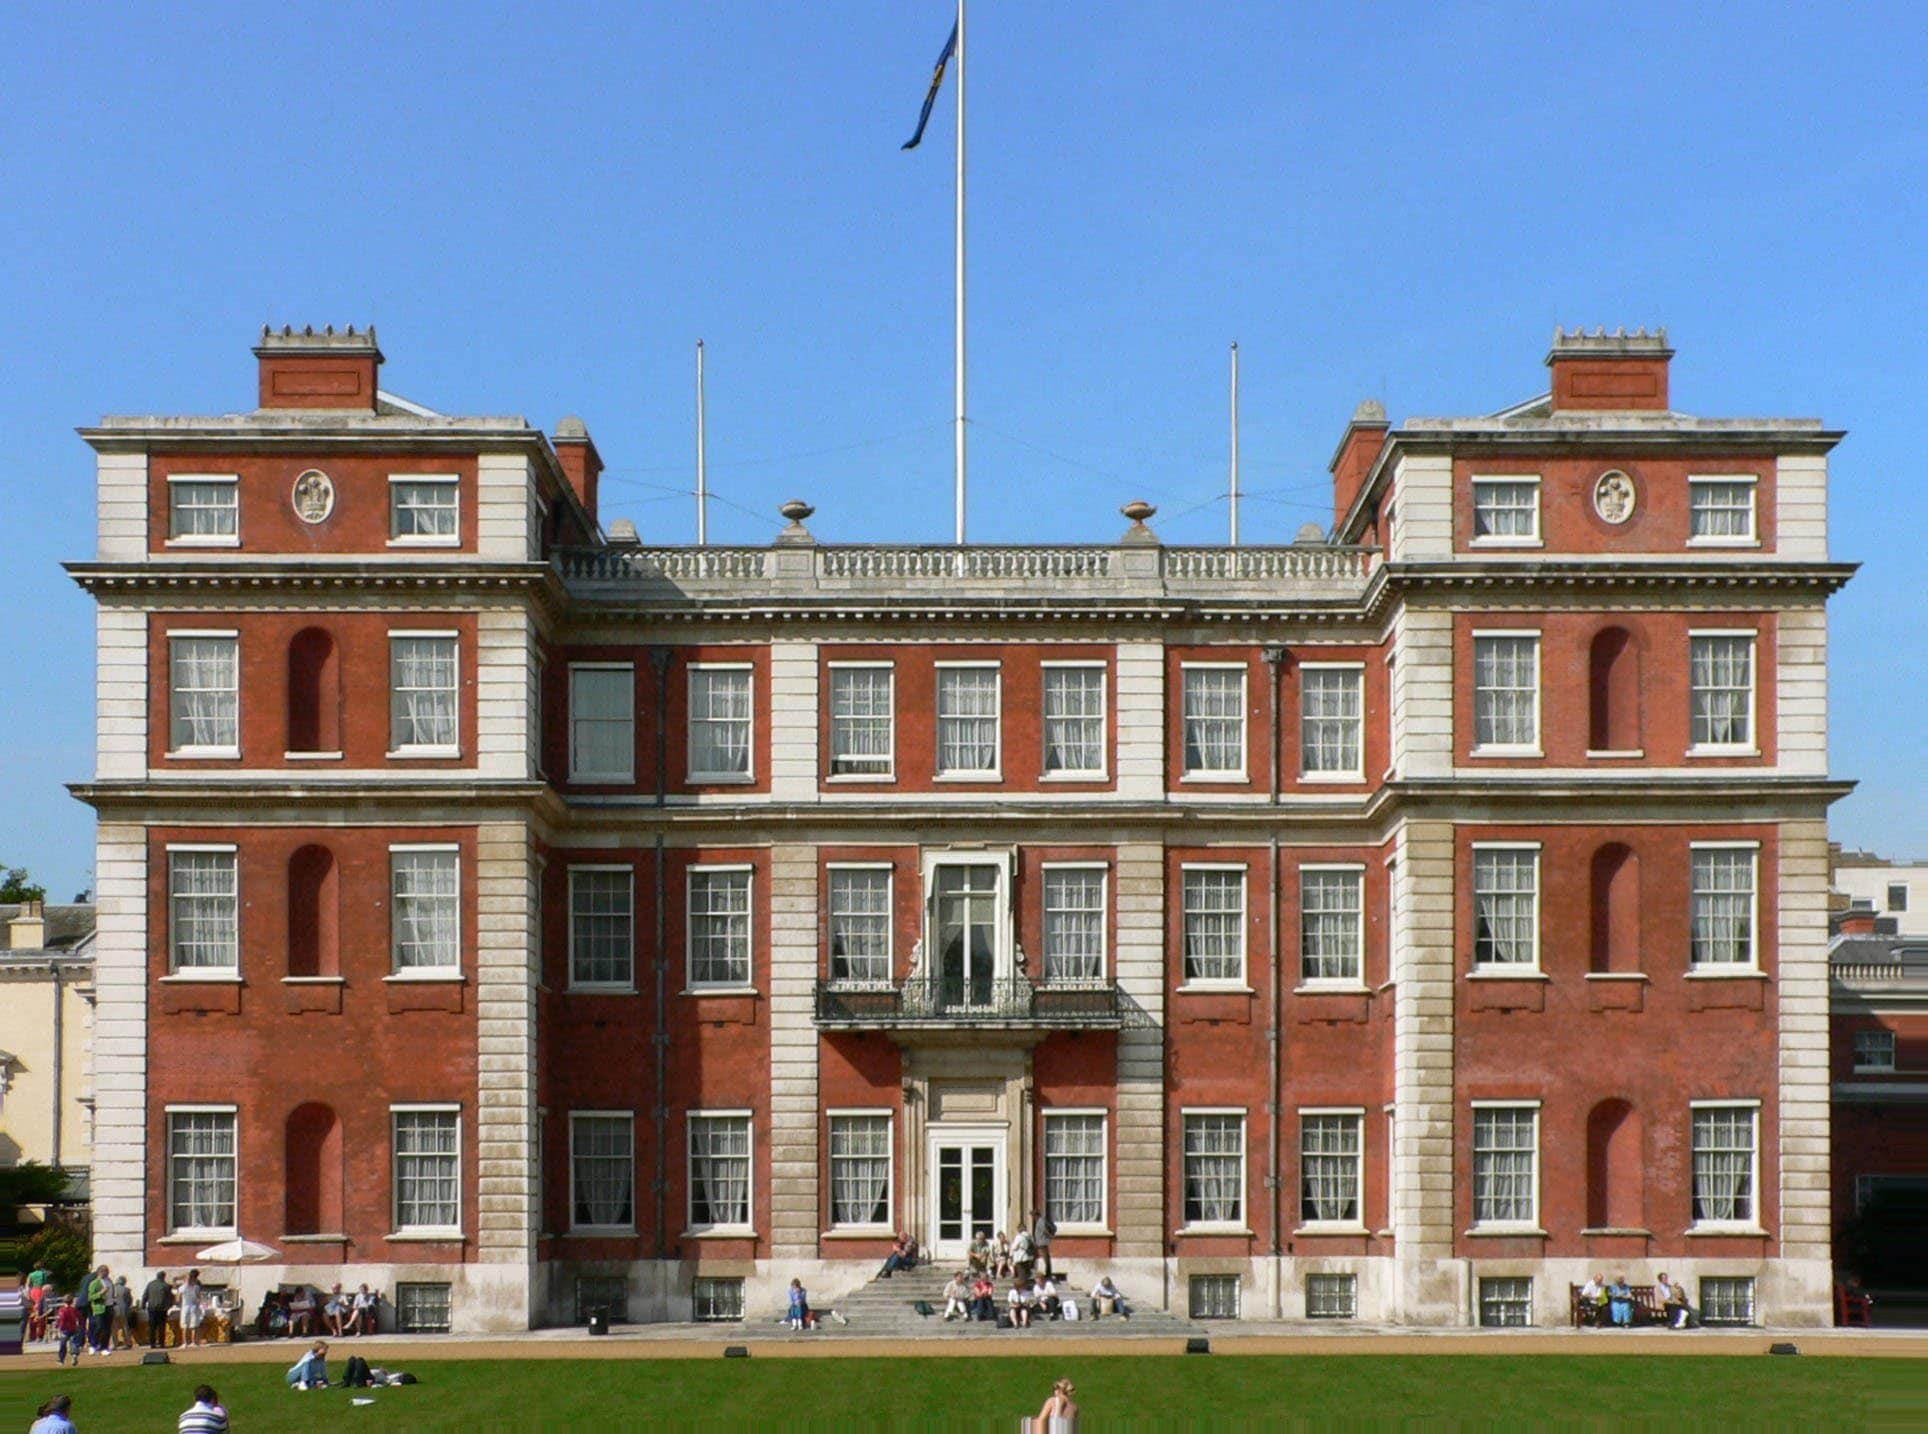 Marlborough House today - no longer a royal residence. | Photo: CMallwitz - wikimedia cc pdm.